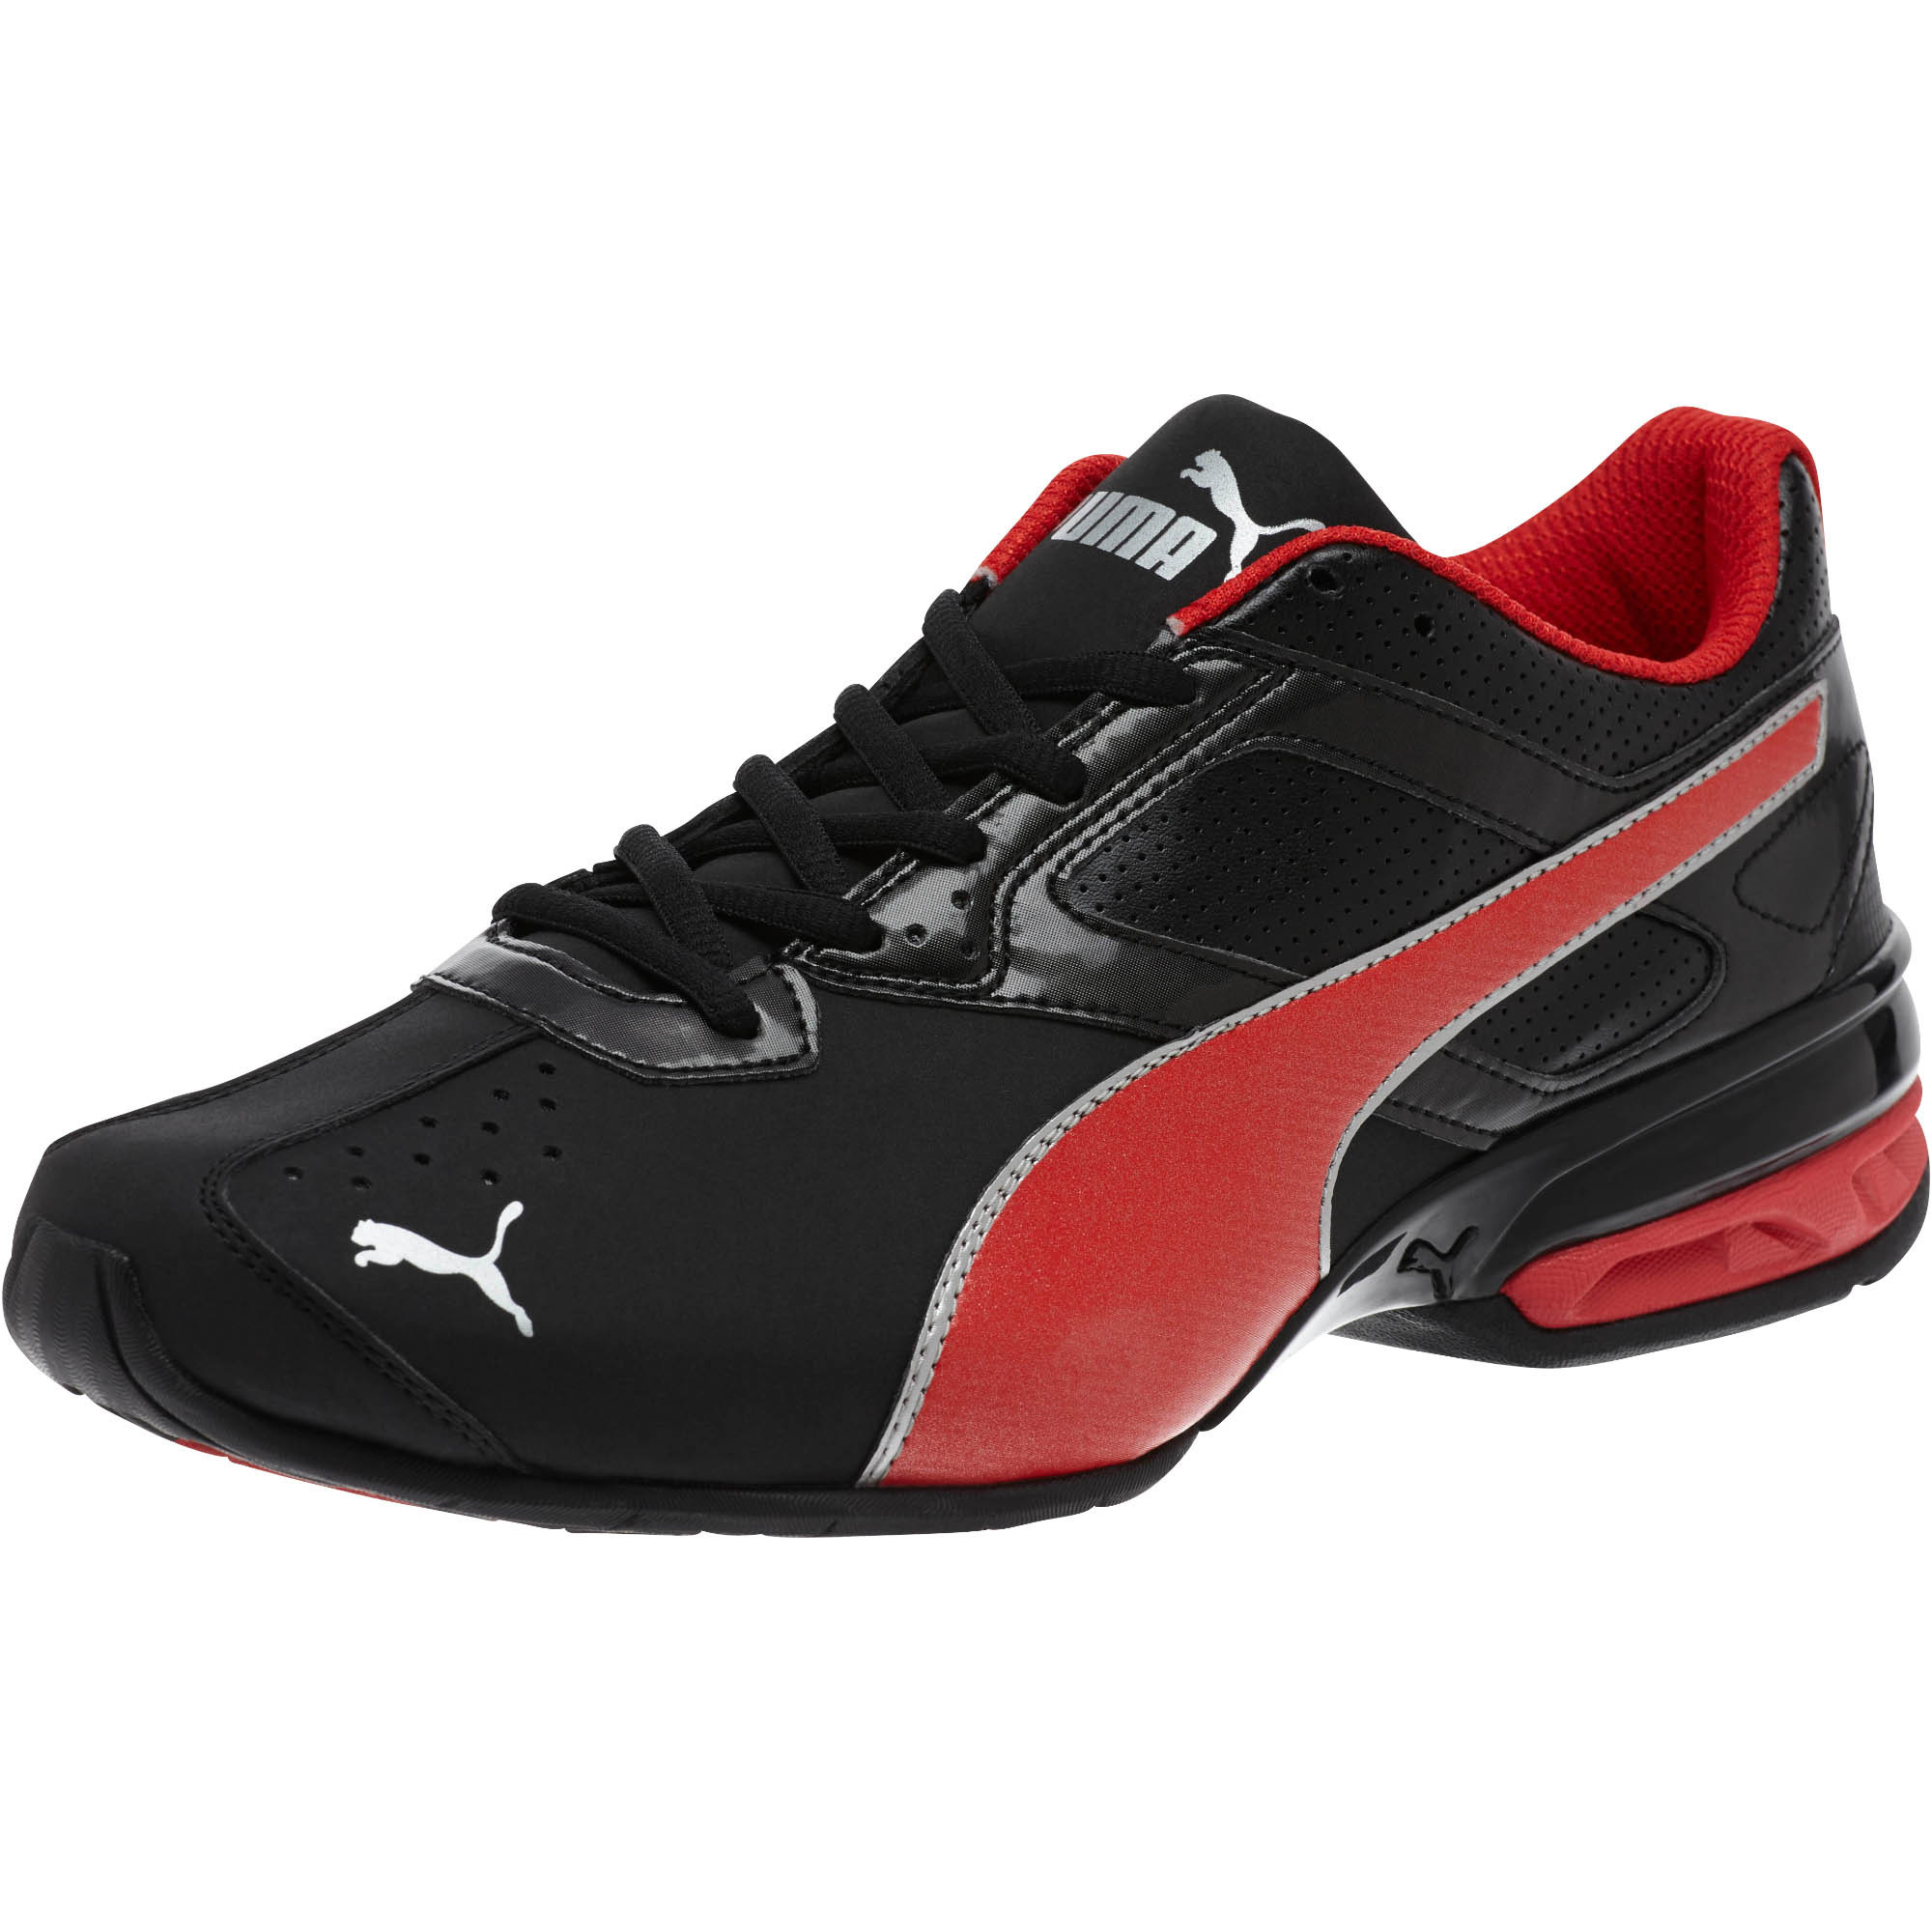 PUMA-Men-039-s-Tazon-6-FM-Sneakers thumbnail 10